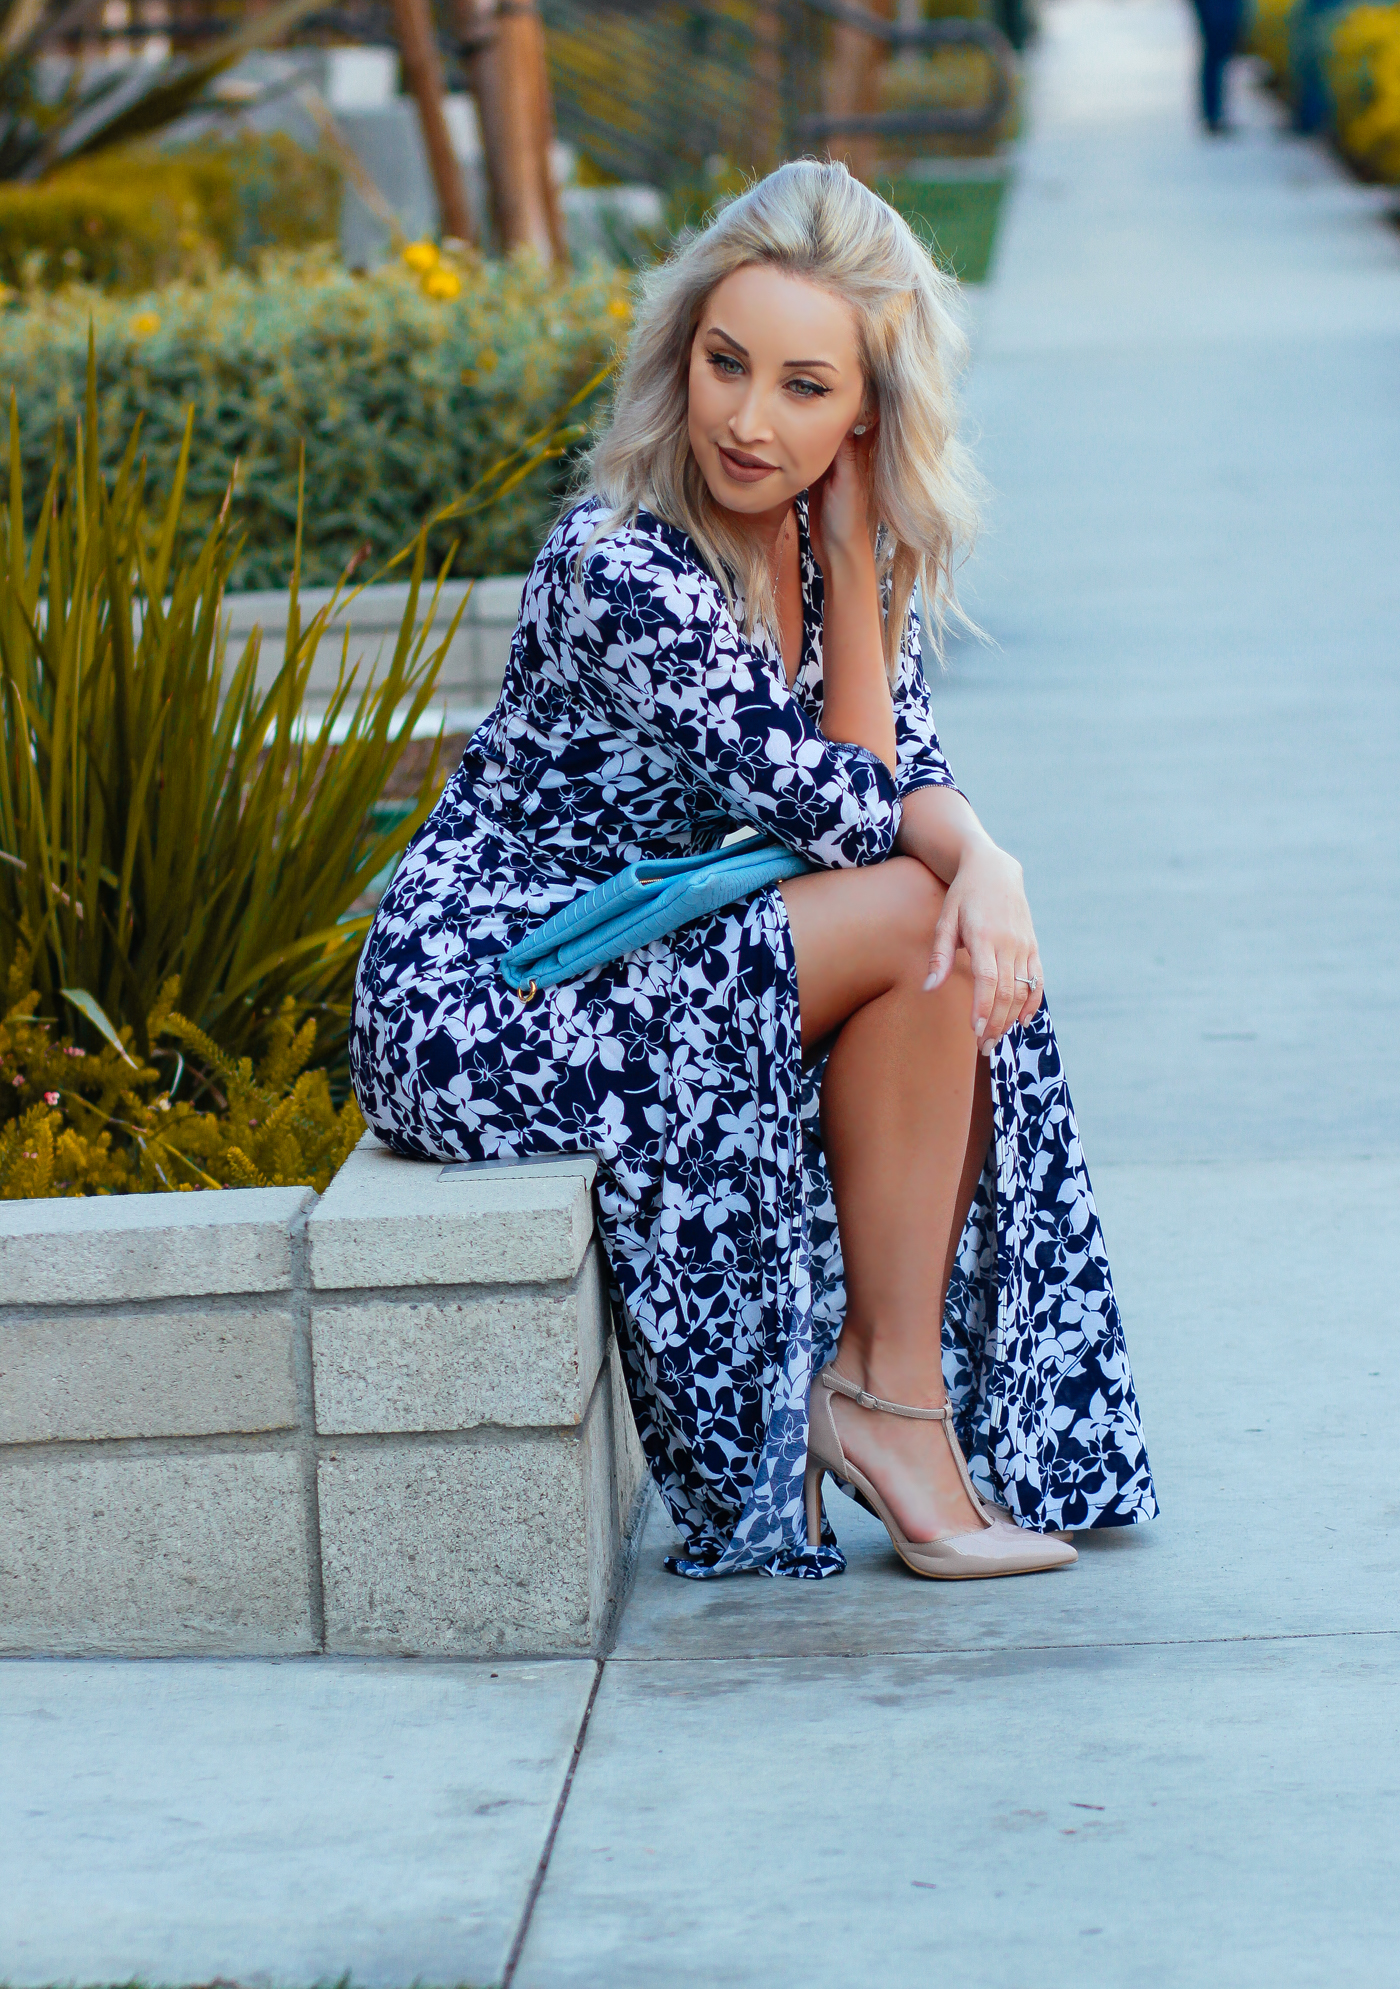 Blondie in the City | Blue and White Floral Wrap Dress